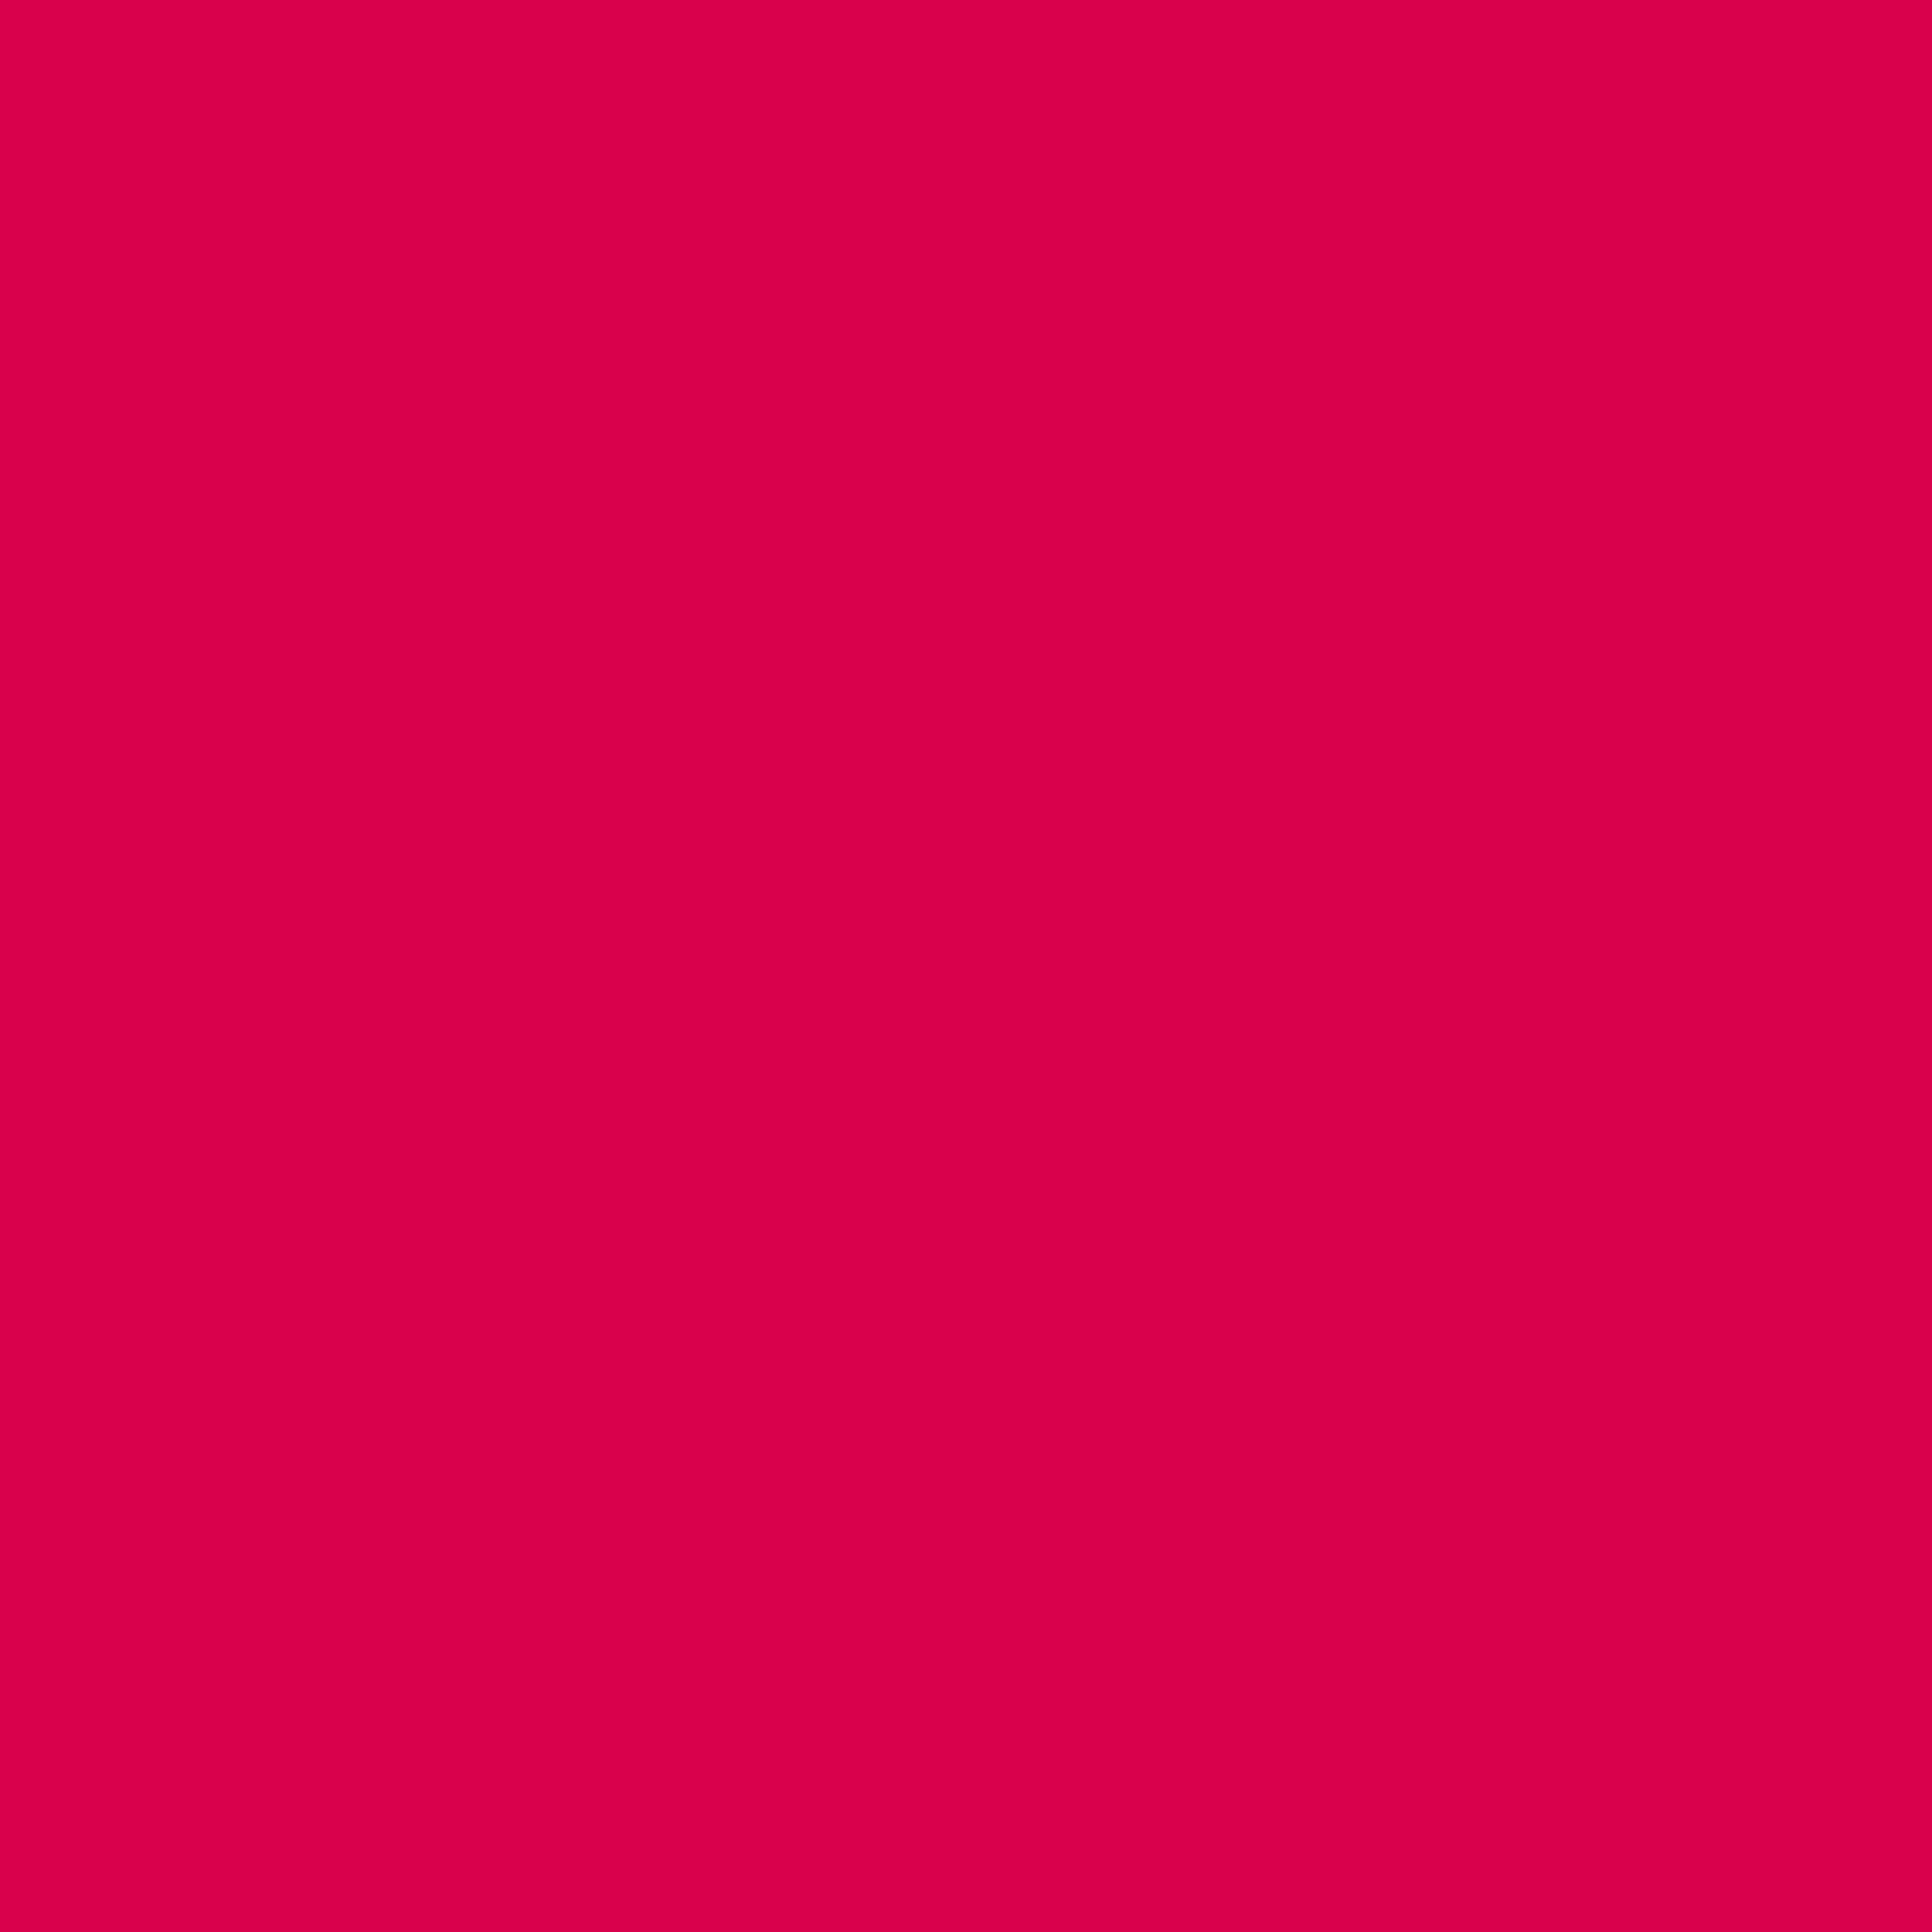 3600x3600 UA Red Solid Color Background